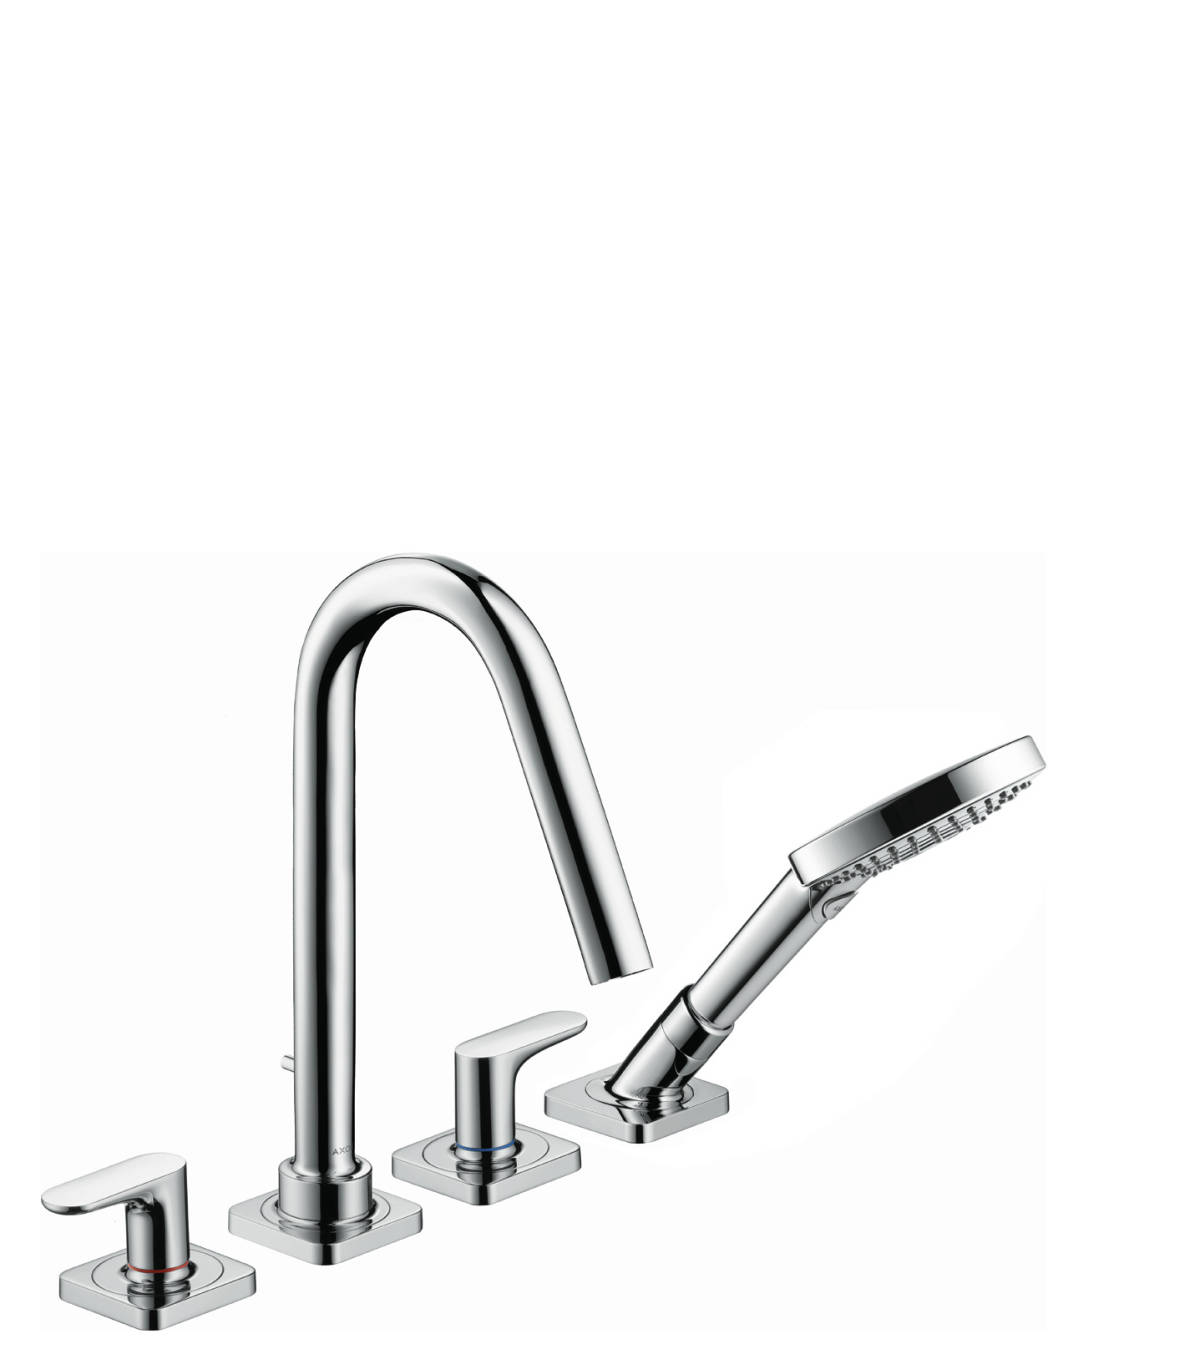 4-hole tile mounted bath mixer with lever handles and escutcheons, Polished Chrome, 34454020